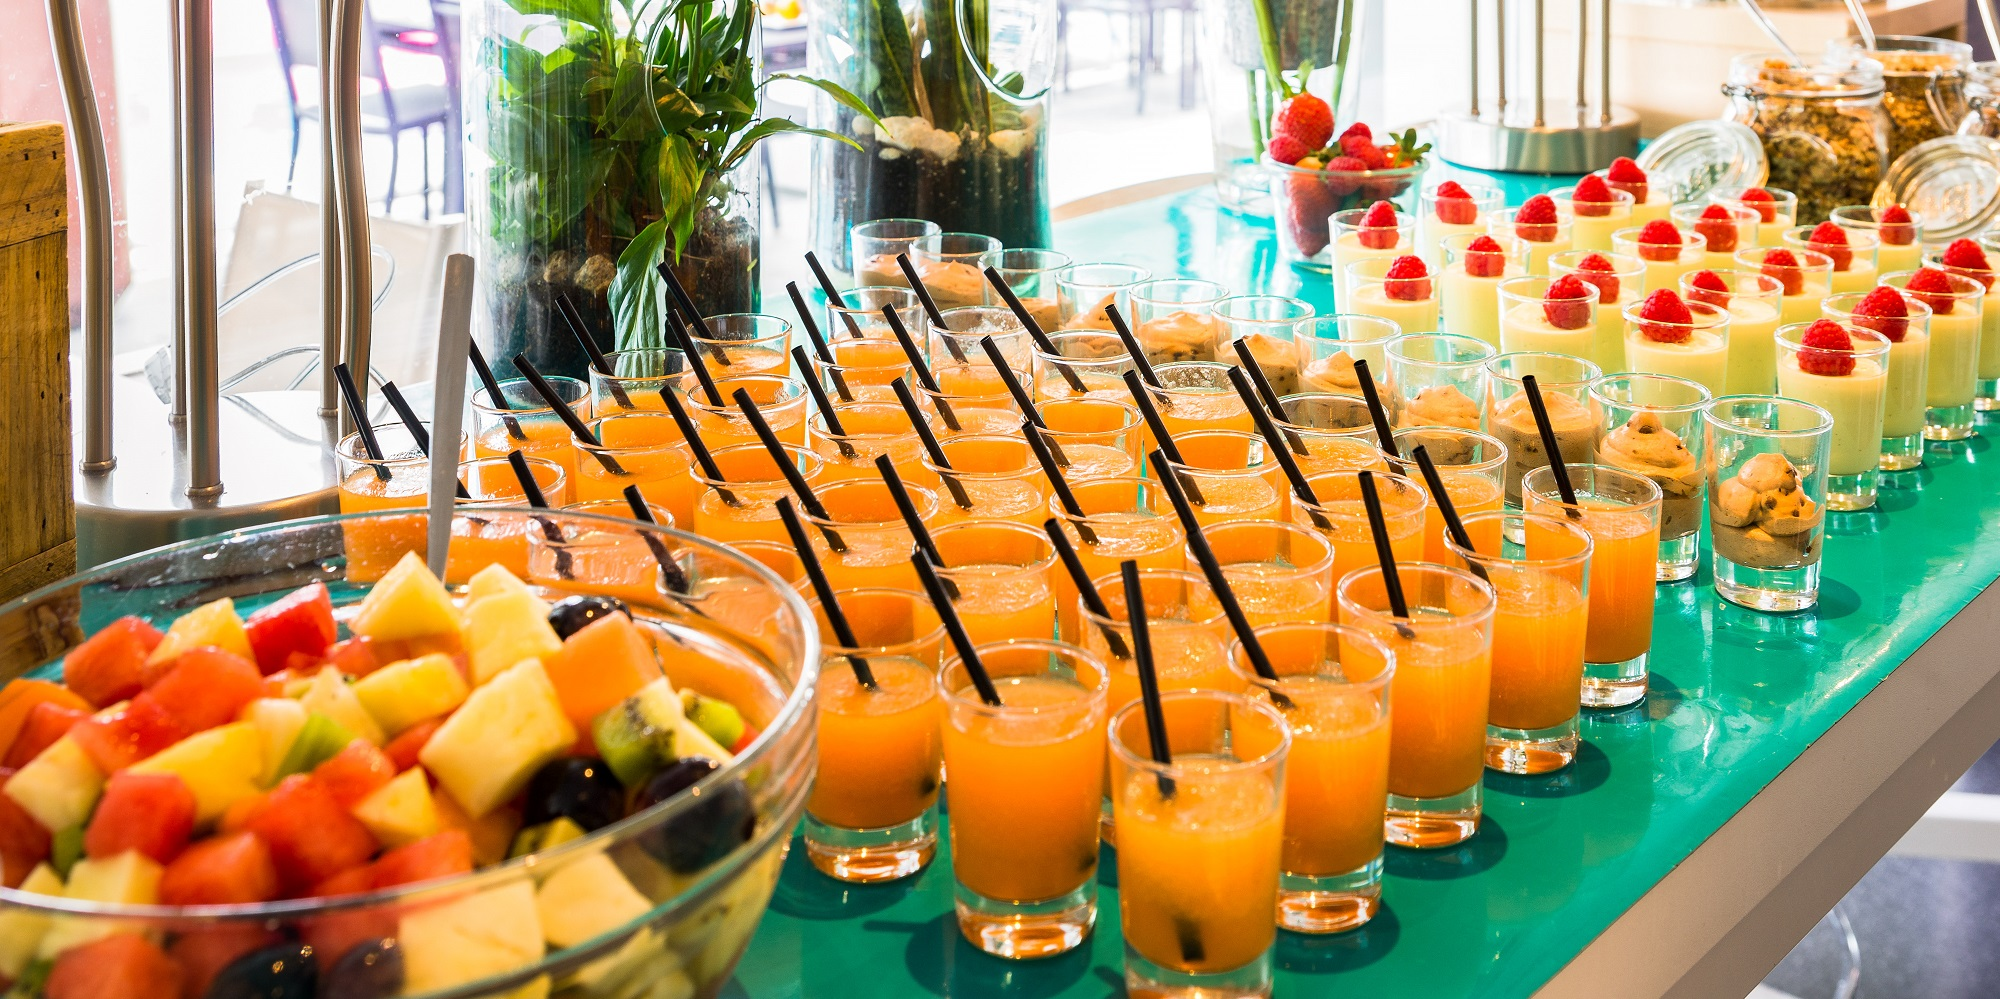 Brunch Novotel Toulouse Purpan (31300 Toulouse)